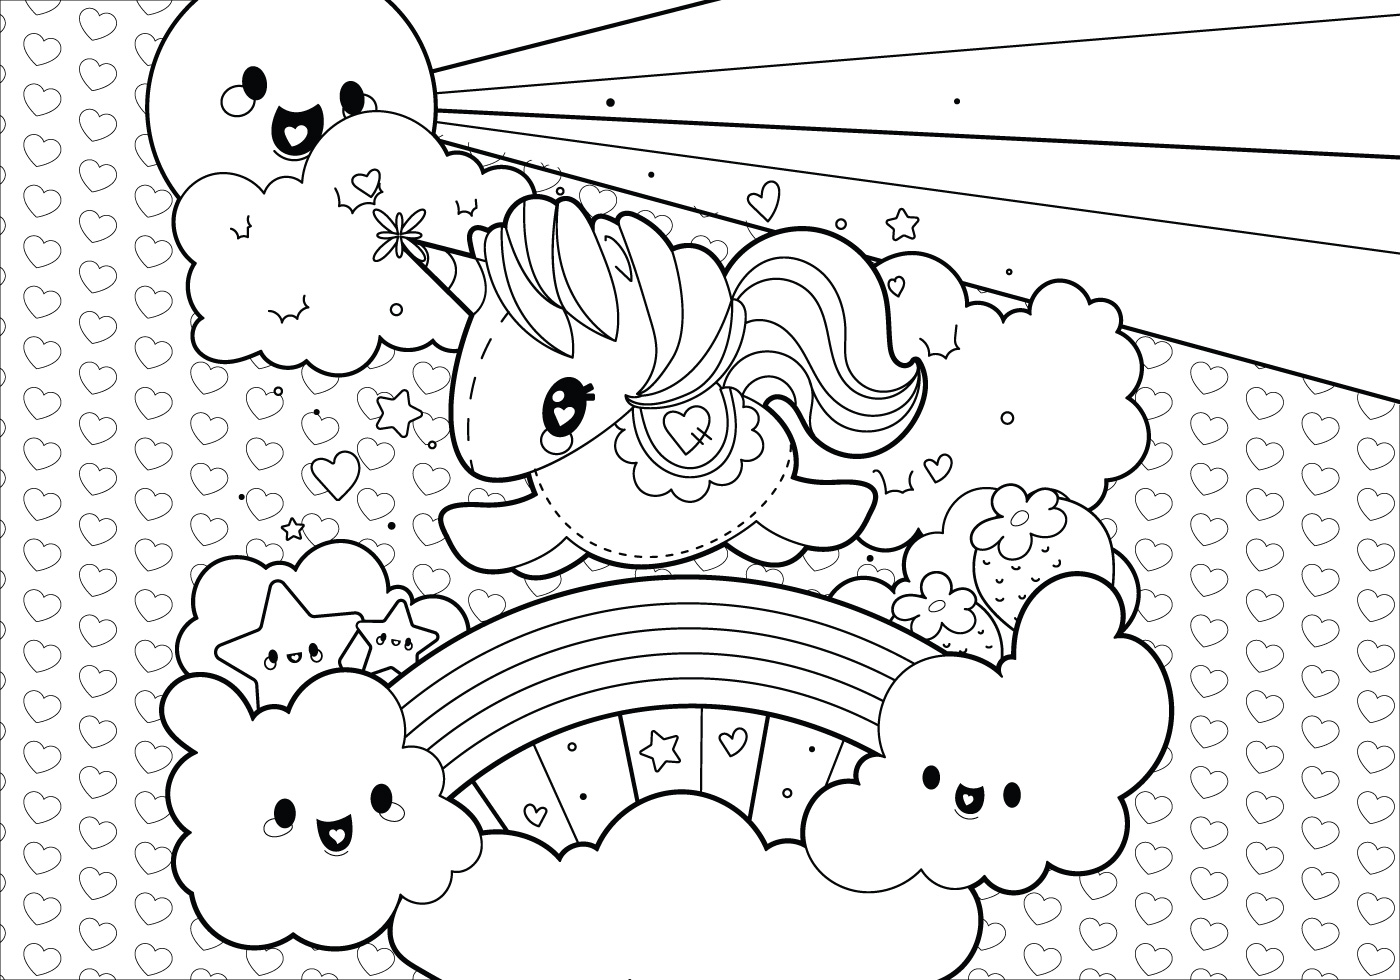 Rainbow Unicorn Scene Coloring Page - Download Free Vector ...